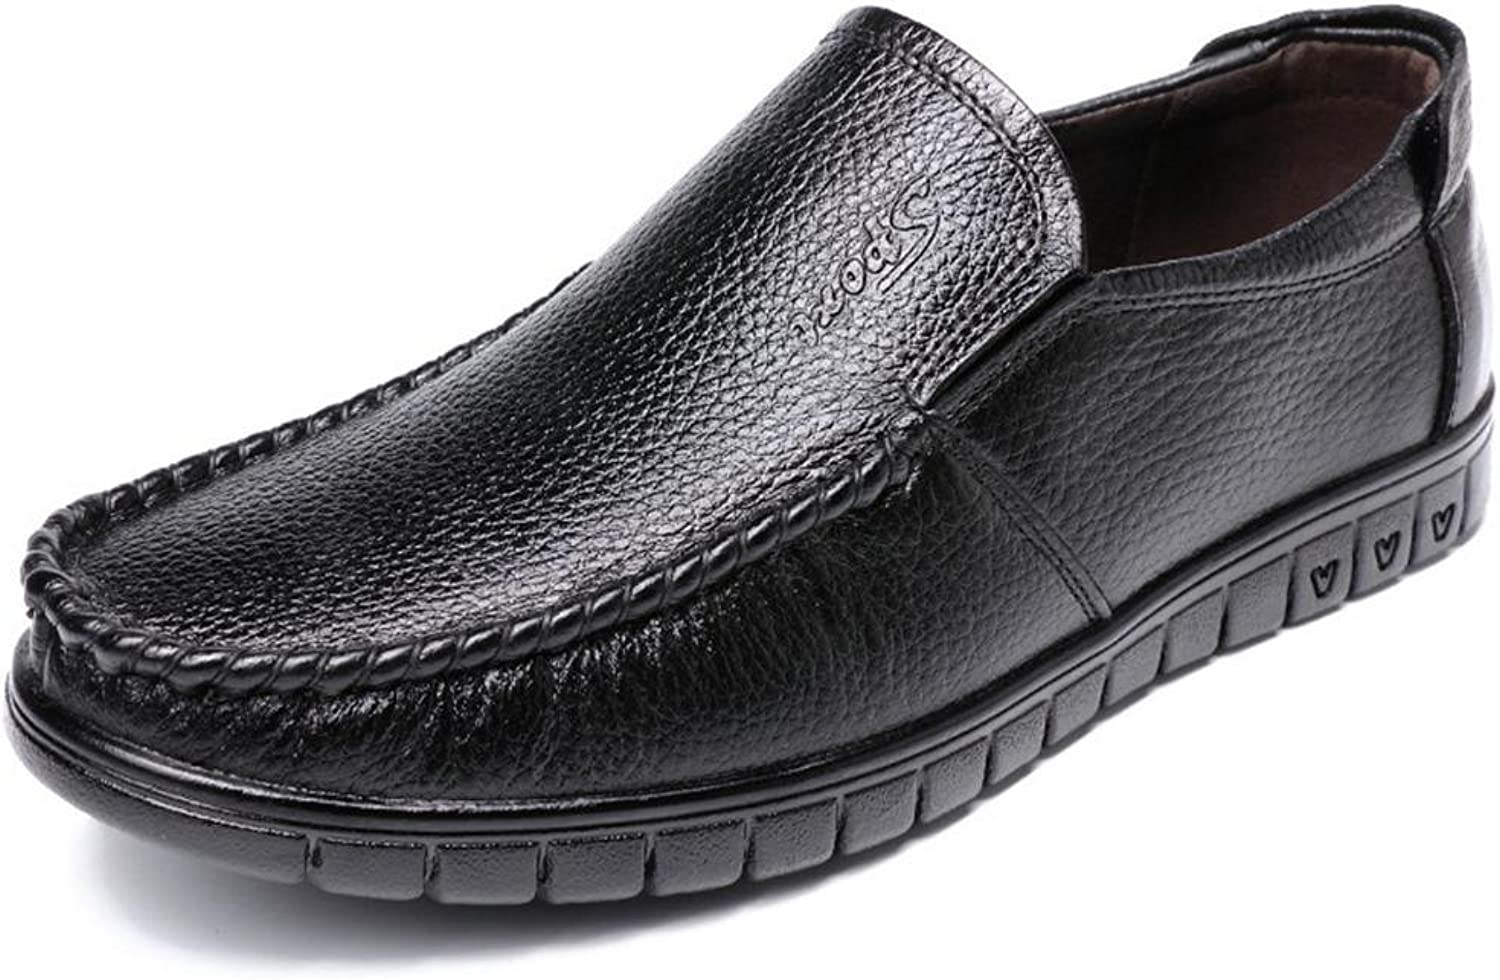 Men's Casual Leather shoes Flat Feet Driving shoes Mens Business Oxford shoes